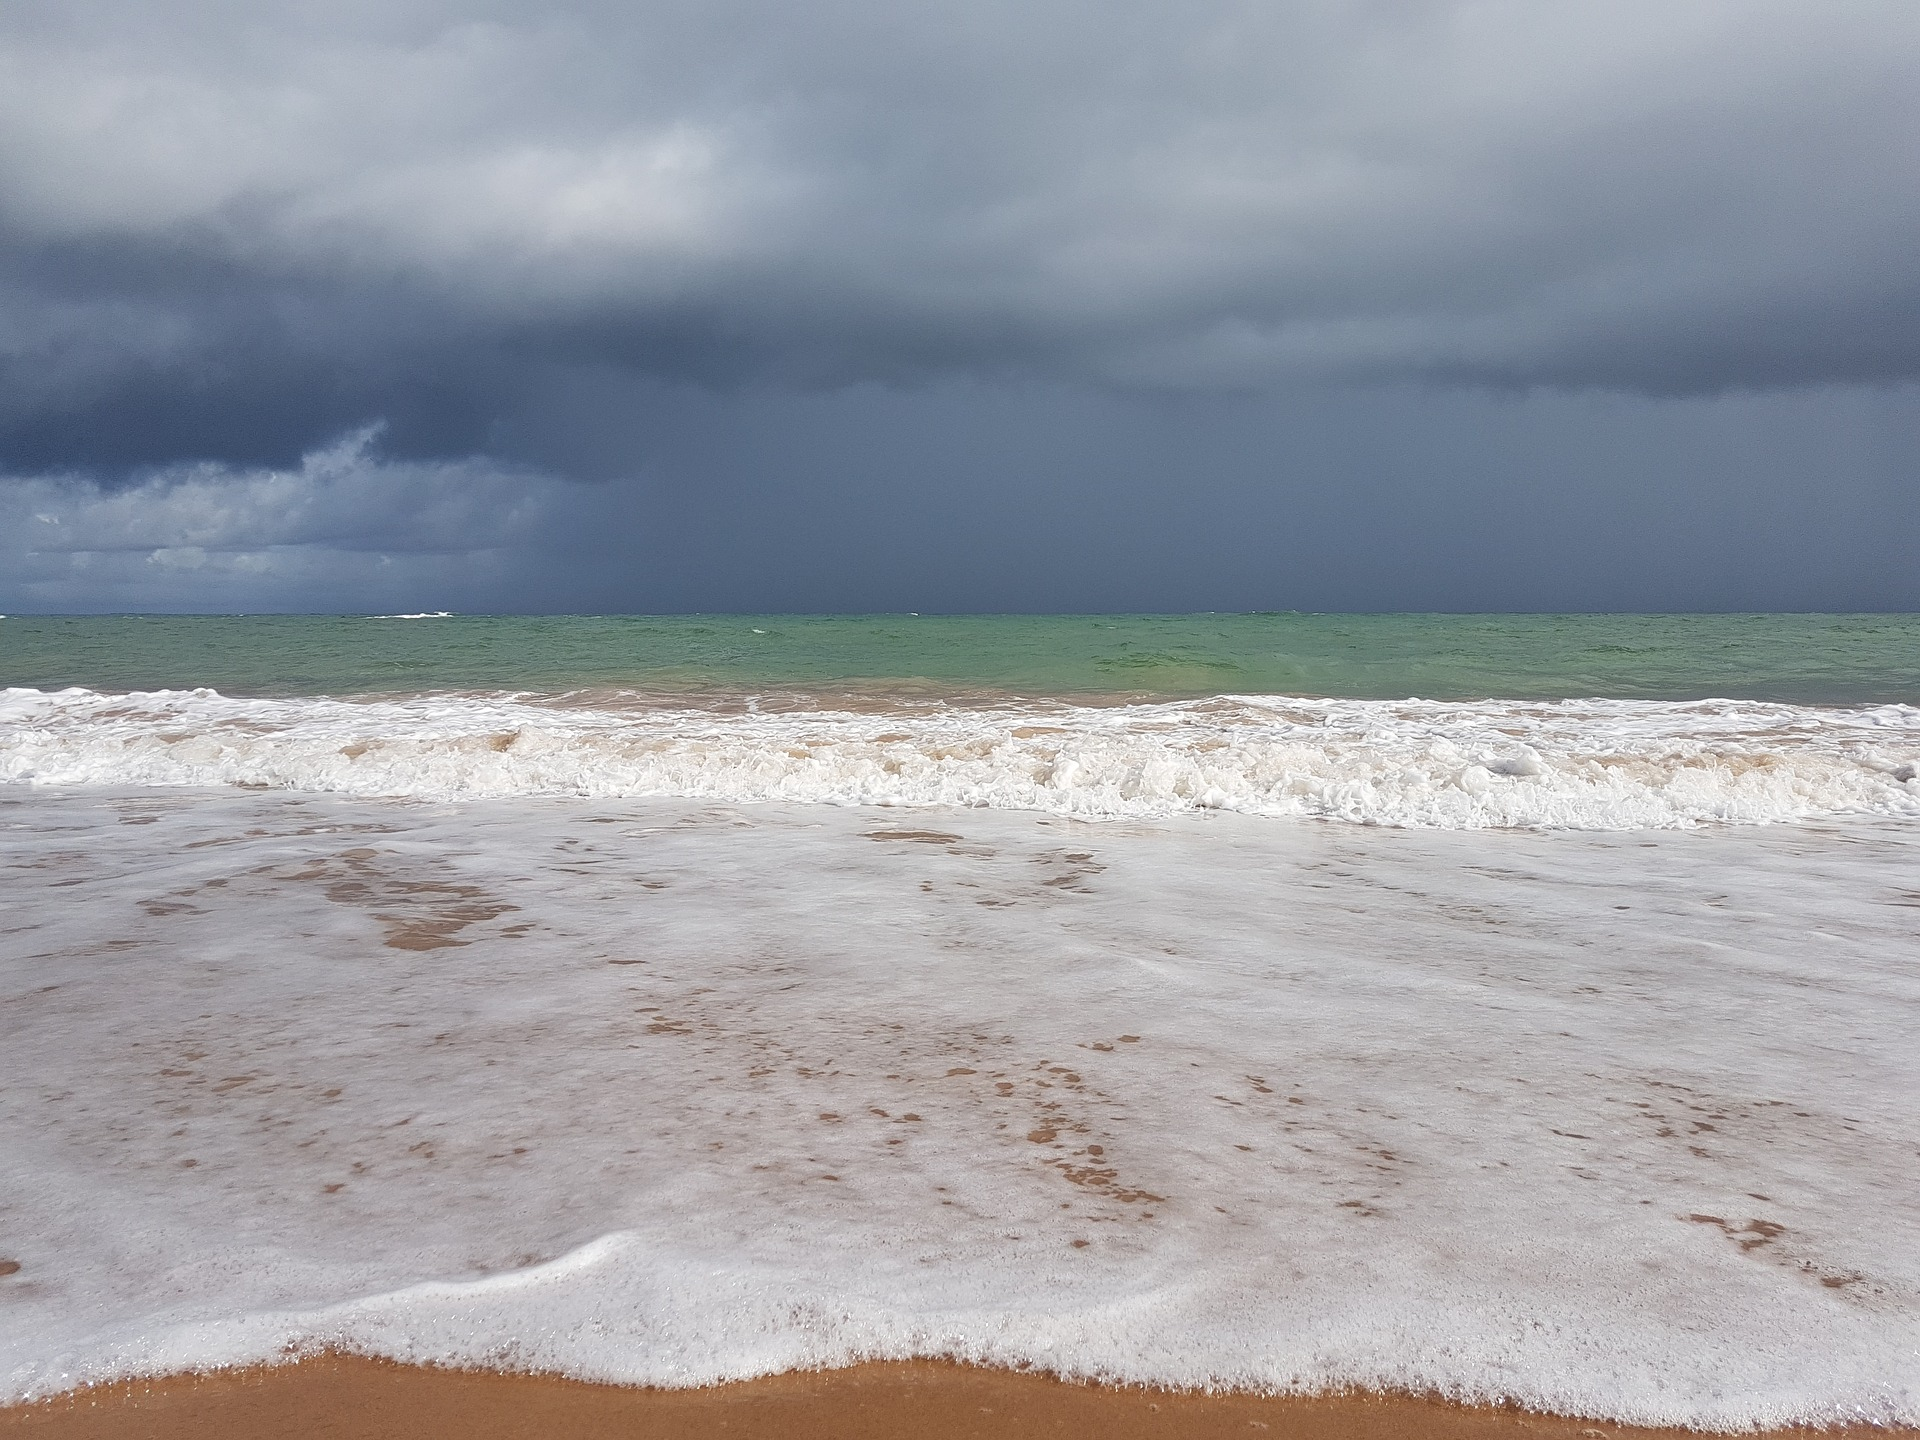 Tempestade no mar interno